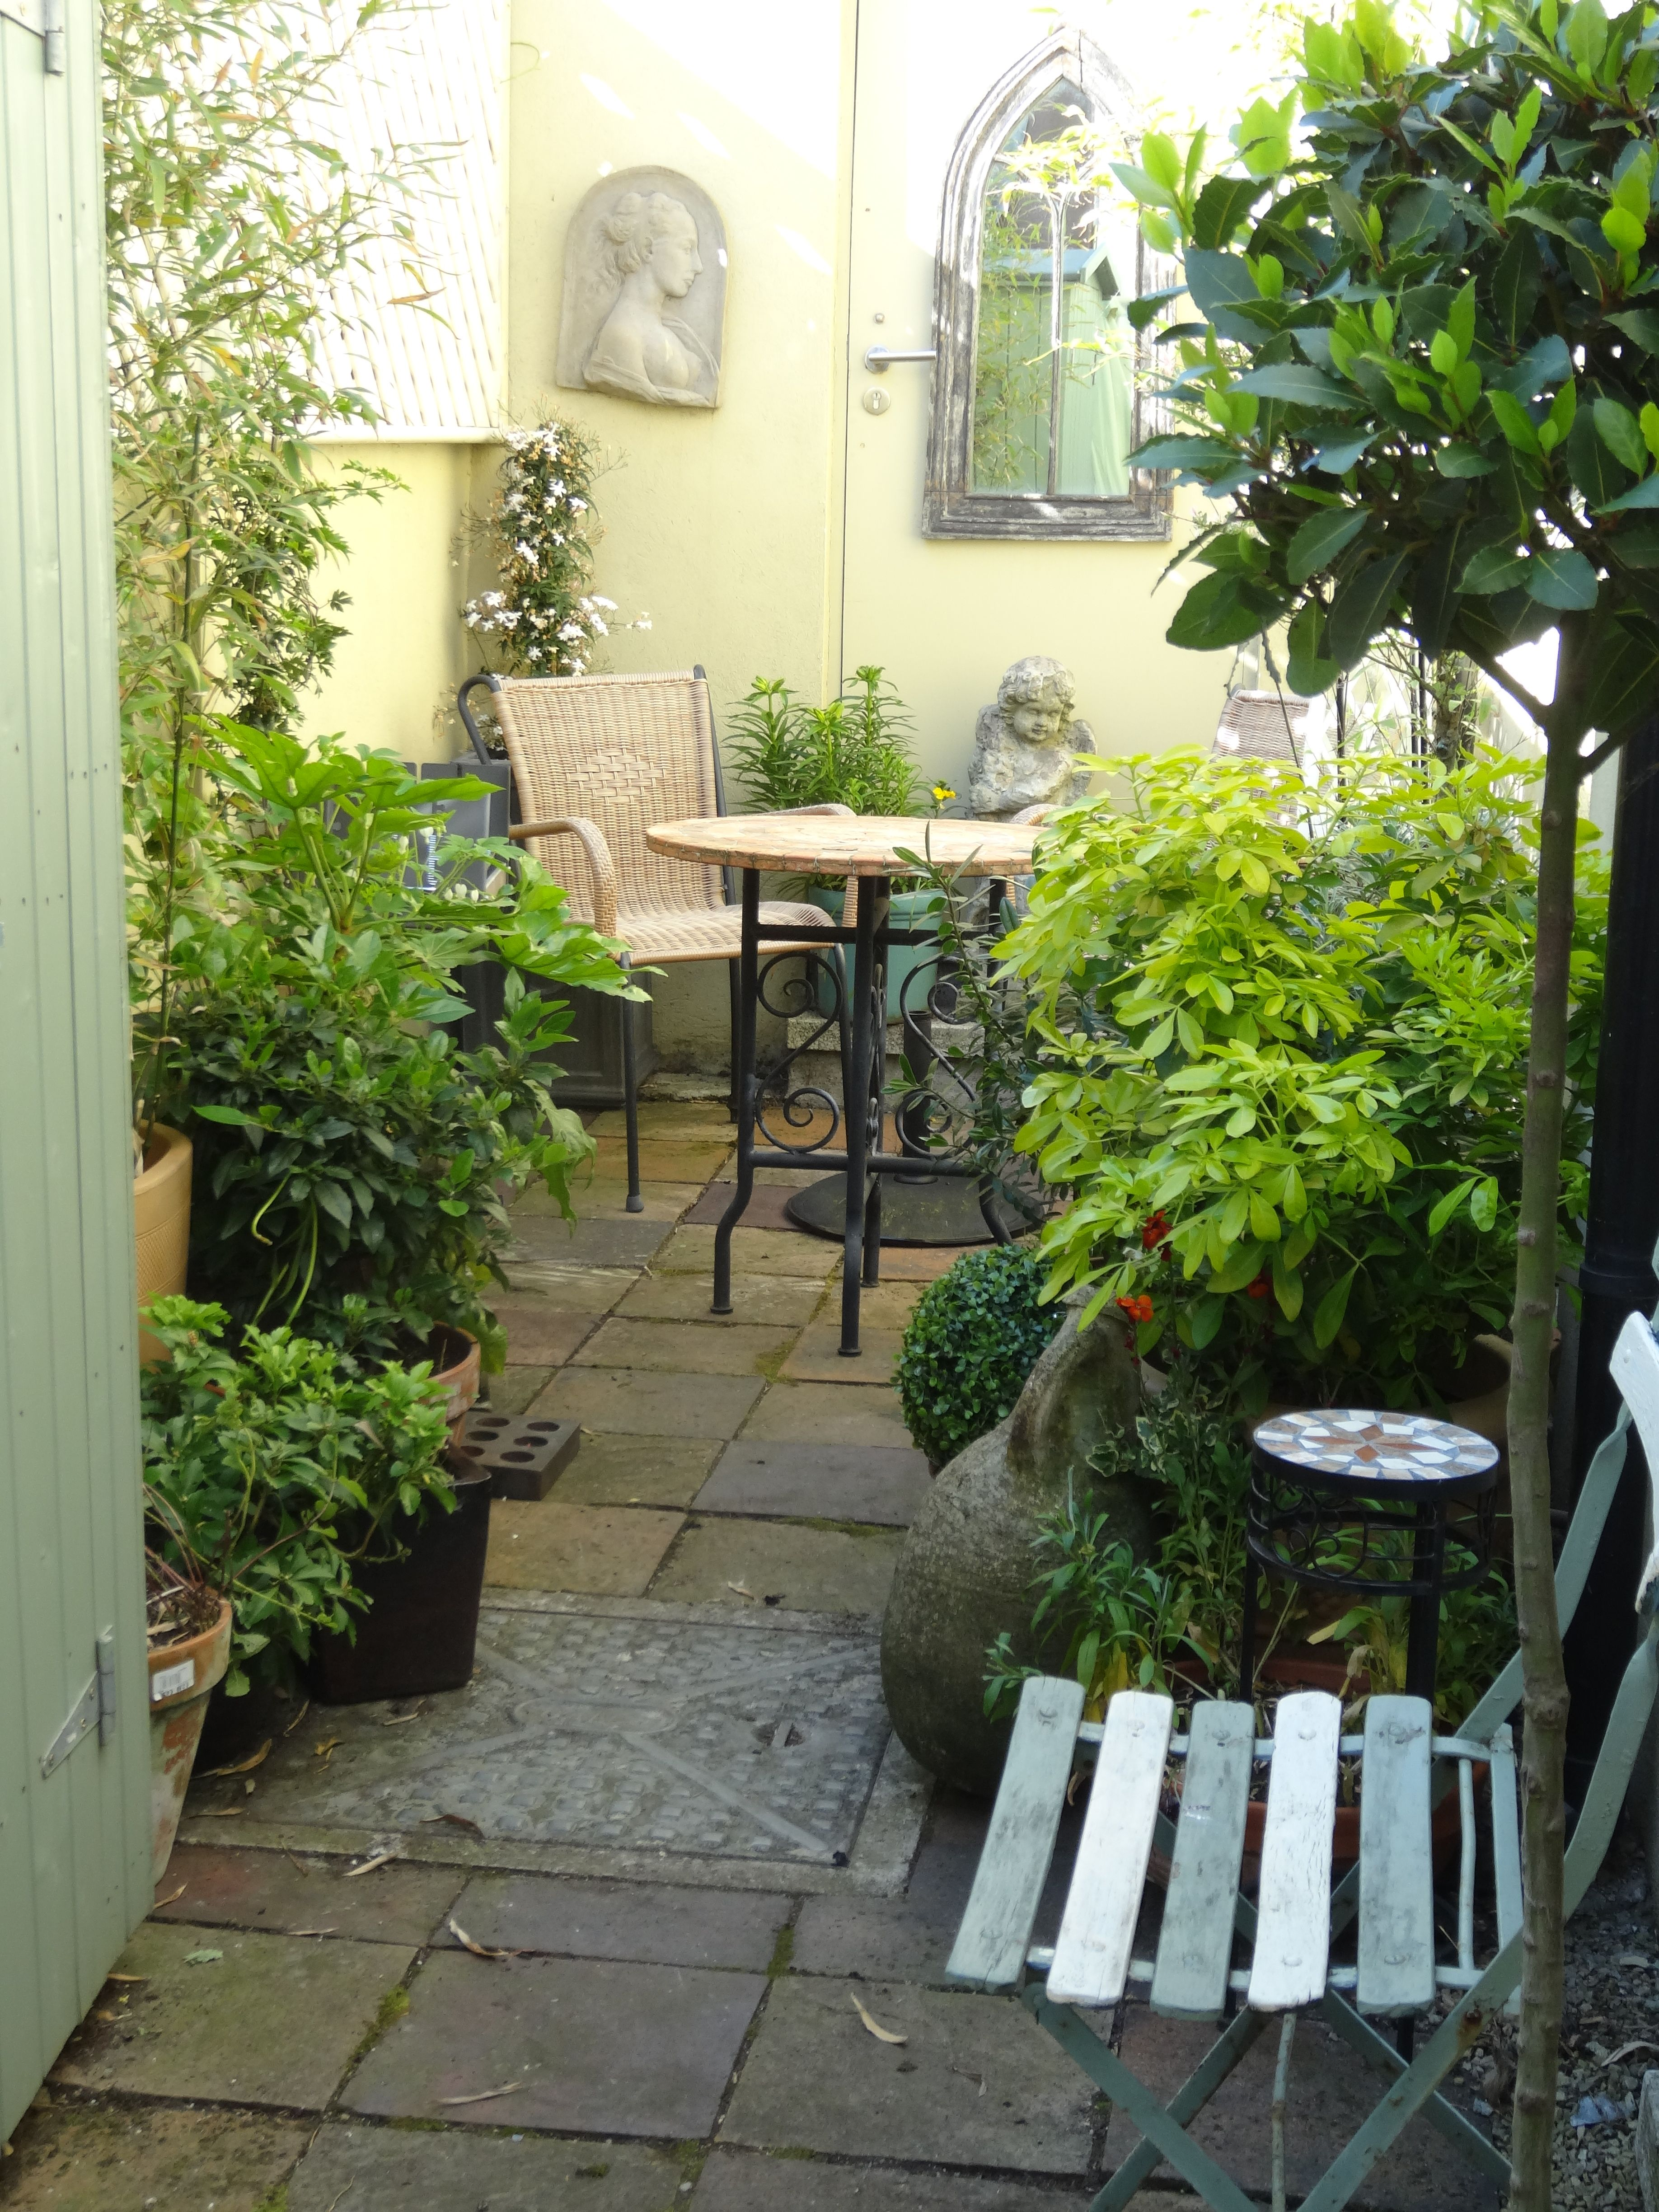 New home garden ideas  Make the most of a tiny city courtyard with tall lush plants and